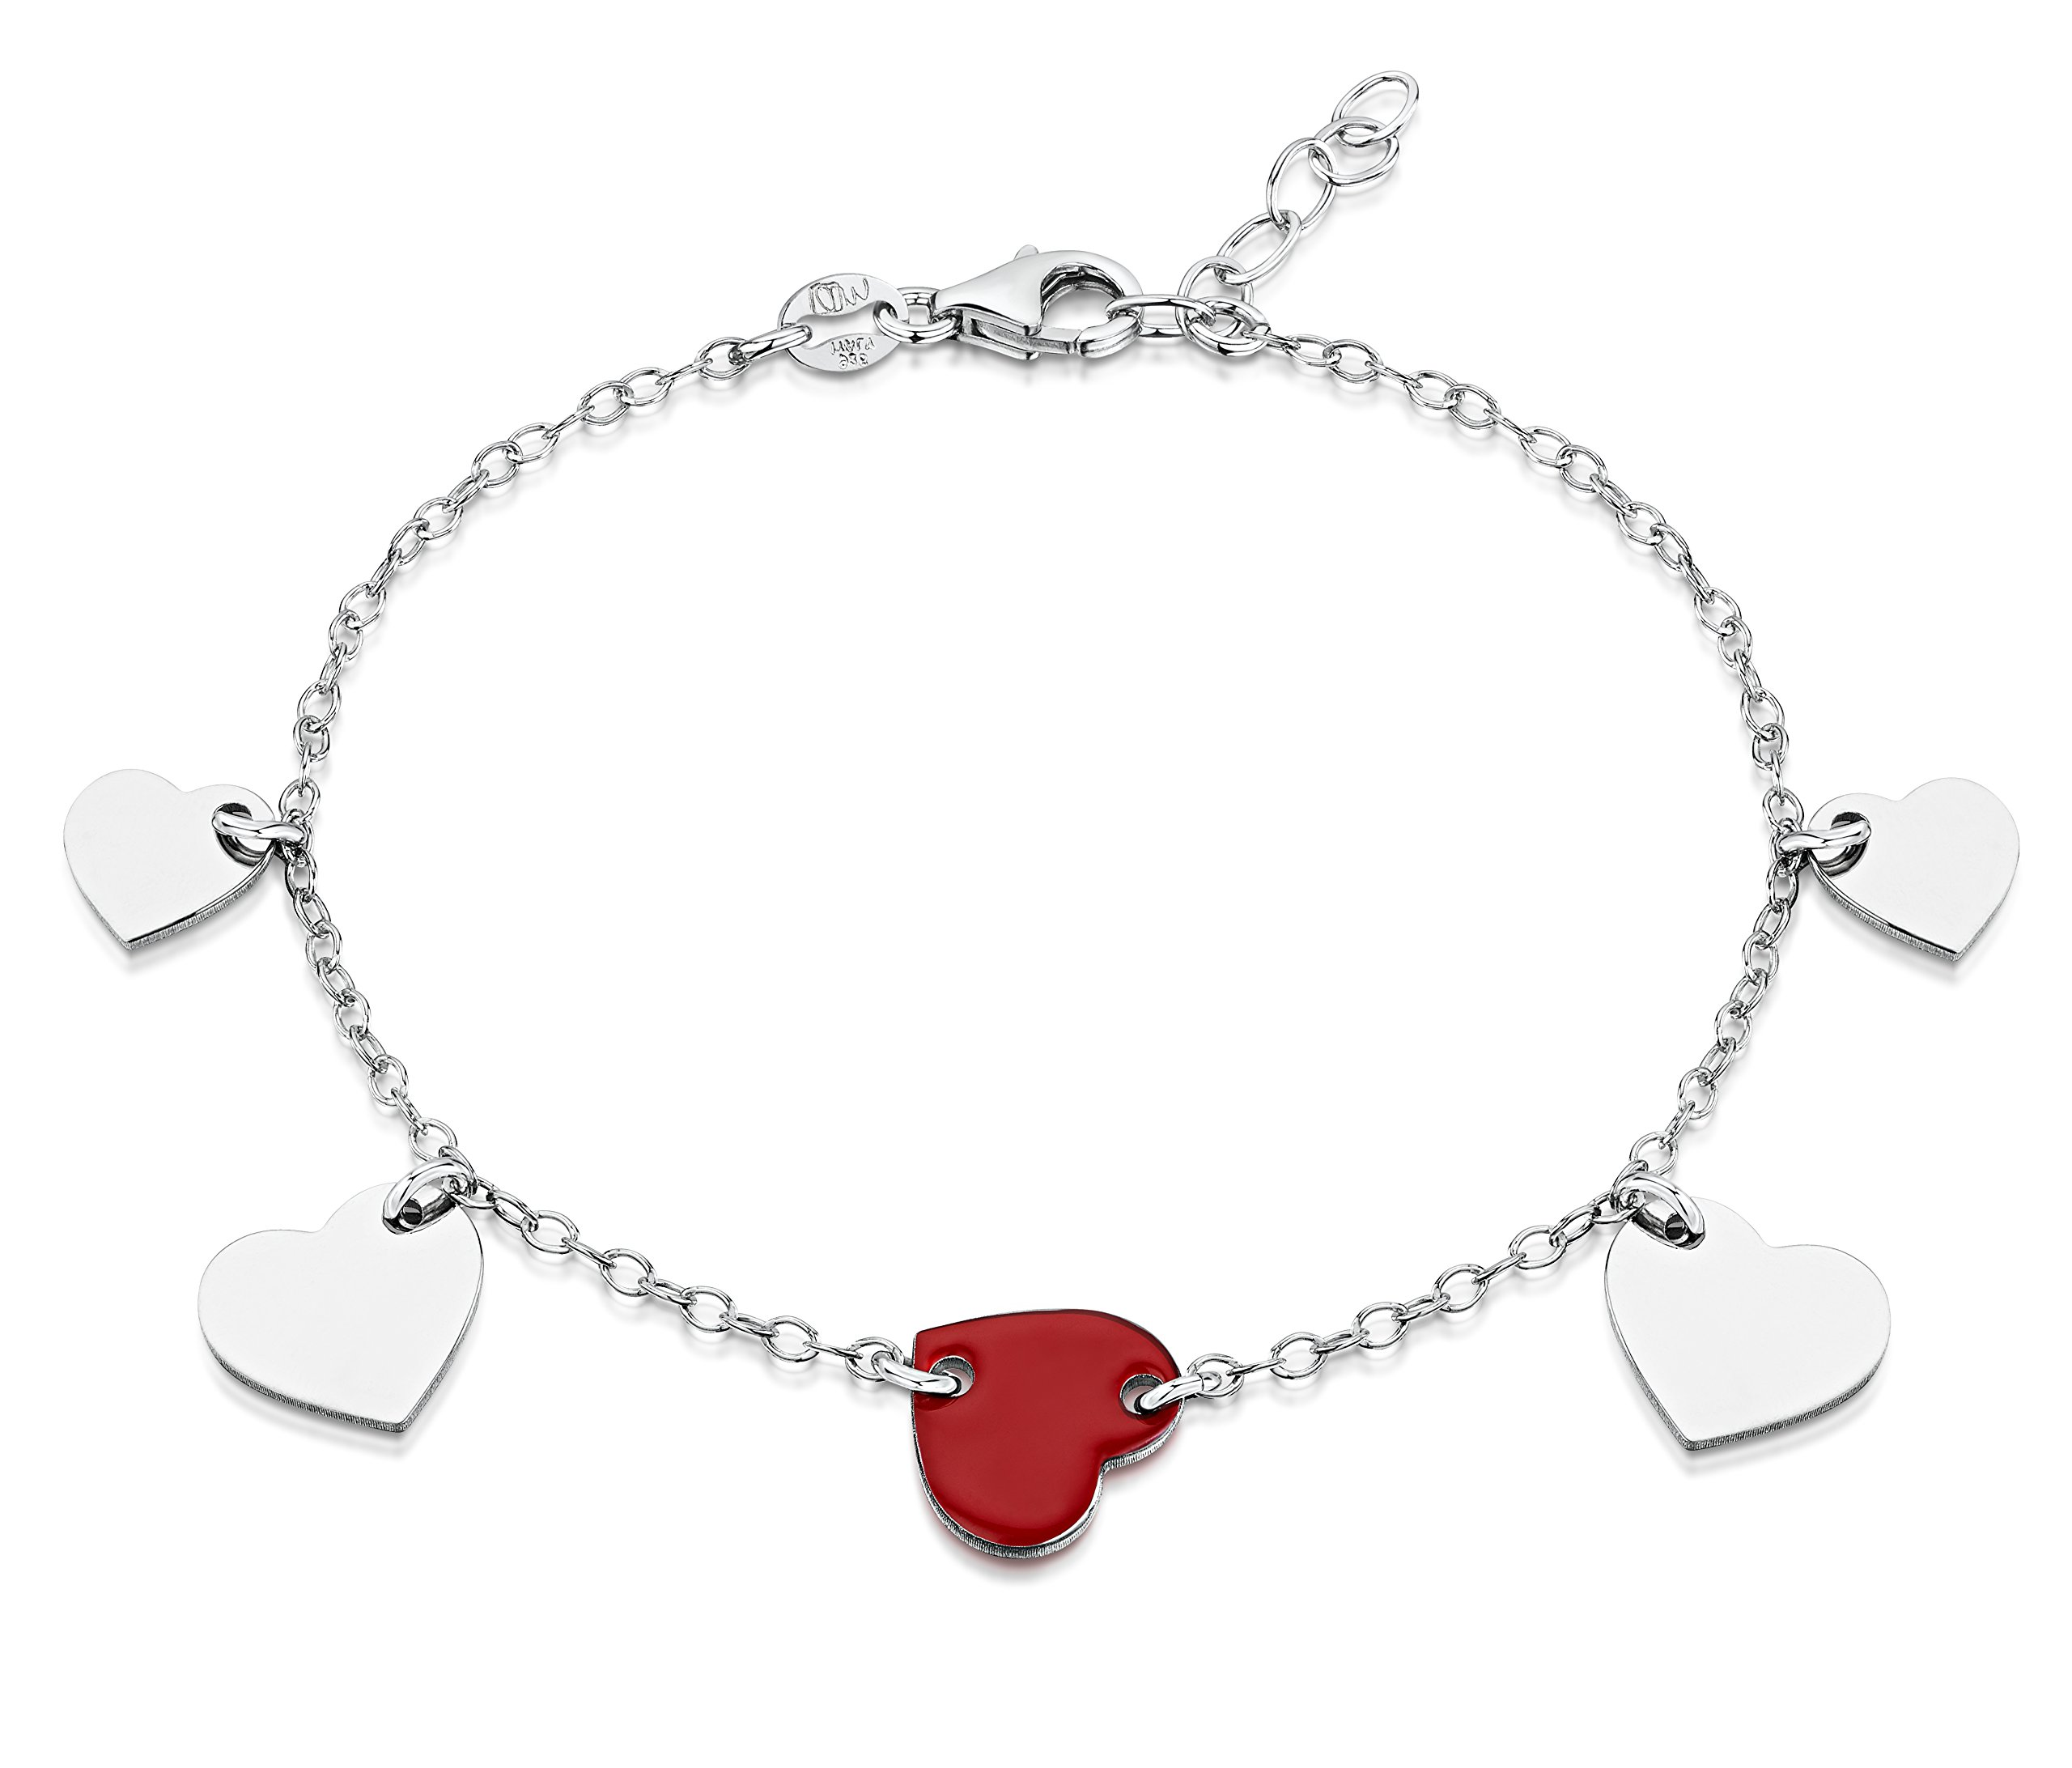 Amberta 925 Sterling Silver Adjustable Ankle Bracelet - 1.7 mm Trace Chain Anklet with Hearts - 9'' to 10'' inch - Flexible Fit